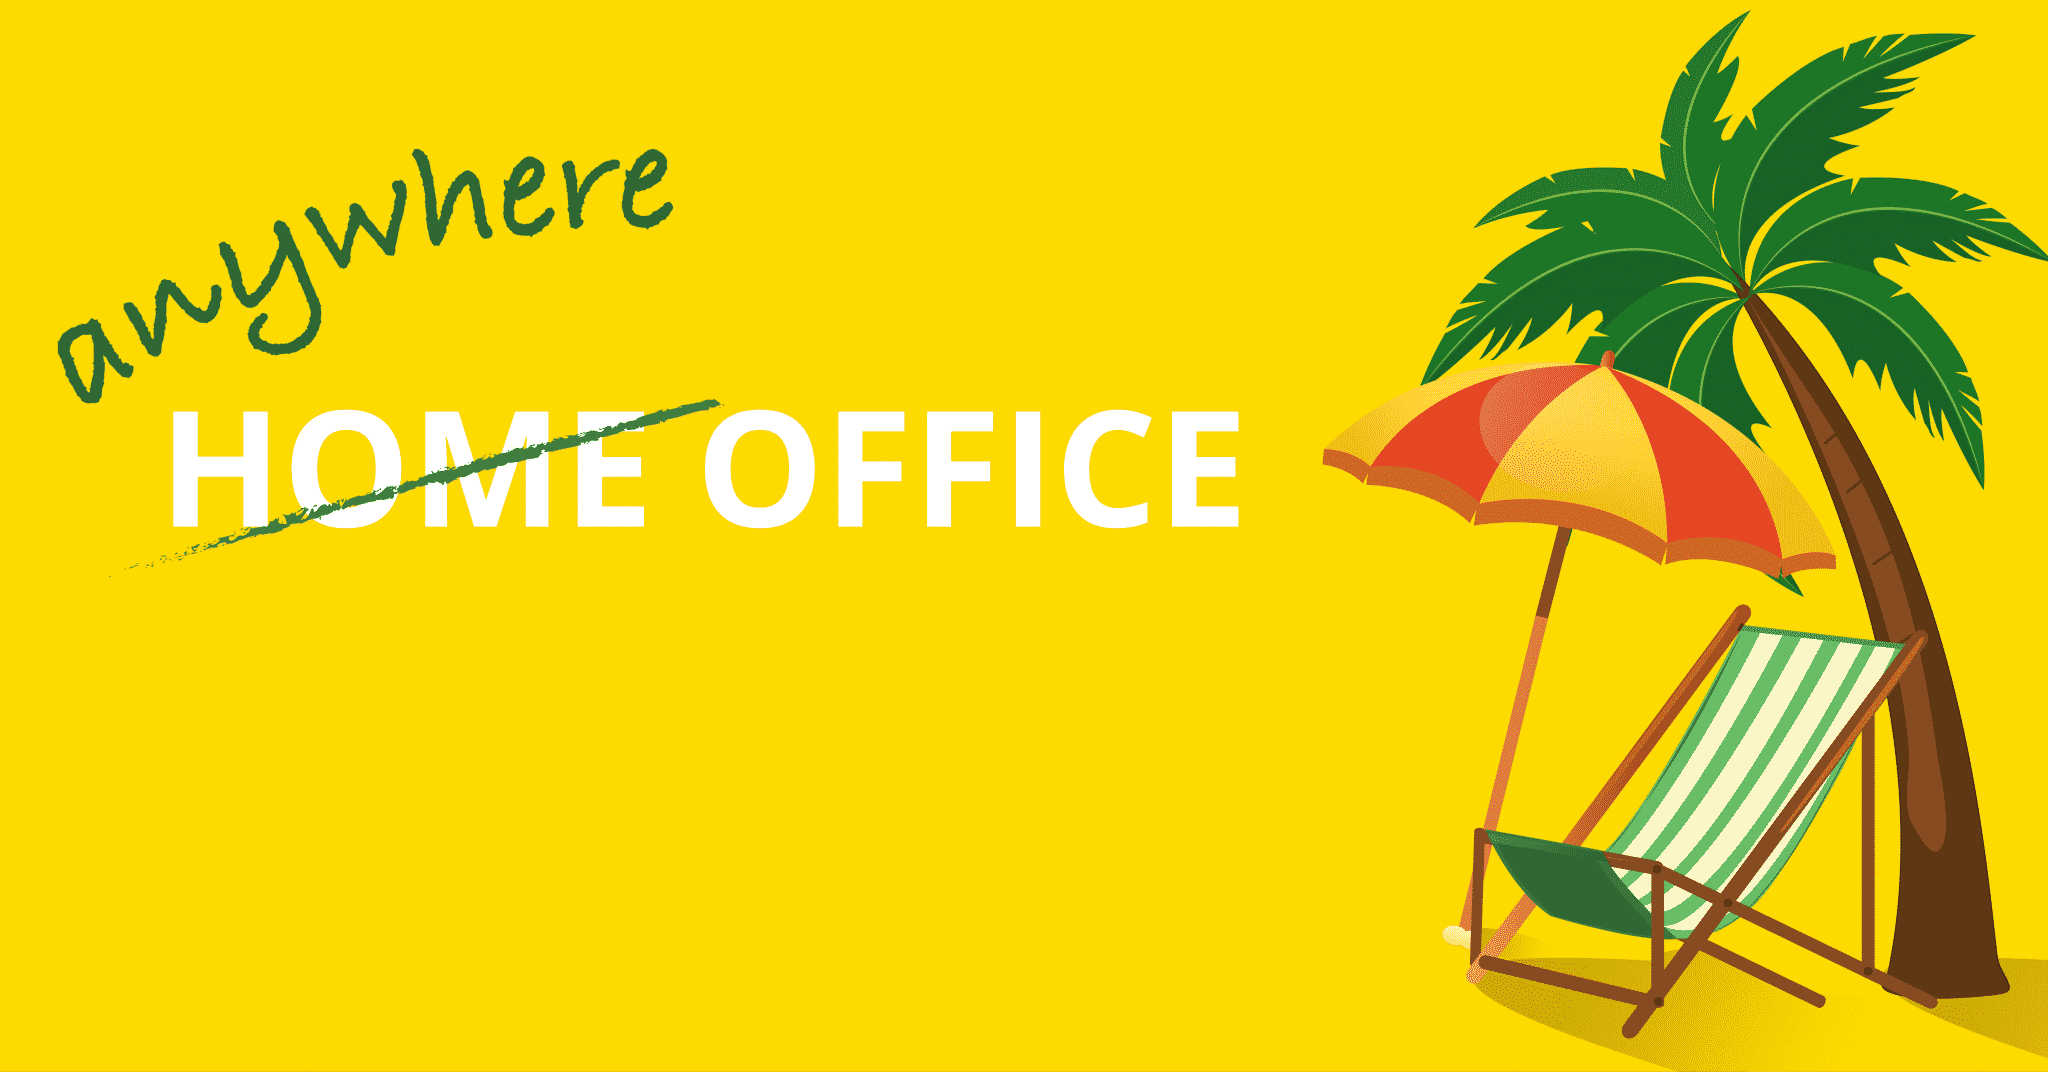 Anywhere Office